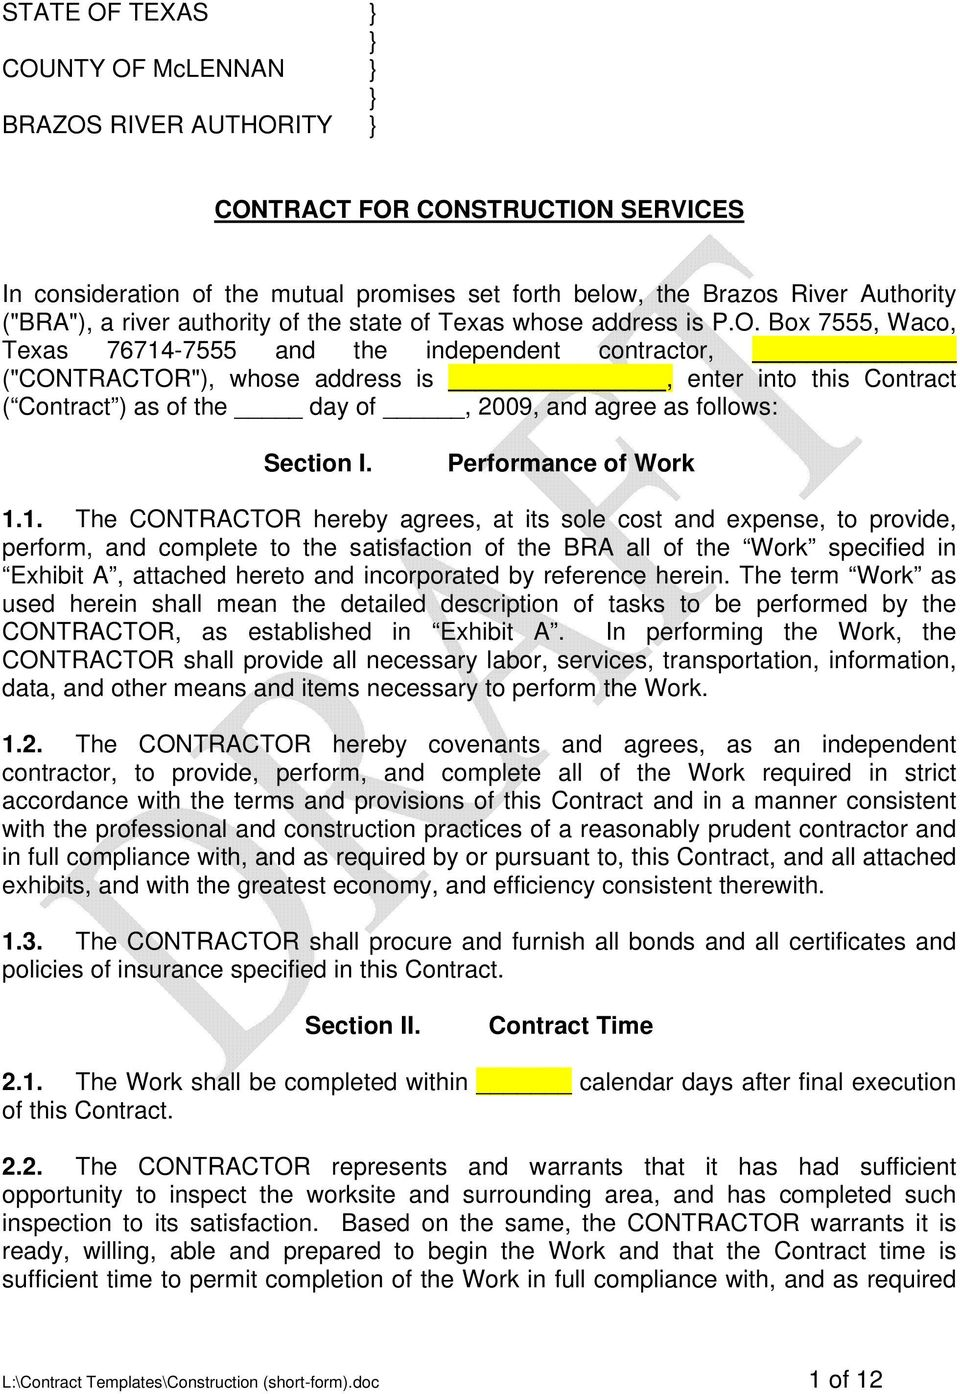 "Box 7555, Waco, Texas 76714-7555 and the independent contractor, (""CONTRACTOR""), whose address is, enter into this Contract ( Contract ) as of the day of, 2009, and agree as follows: Section I."